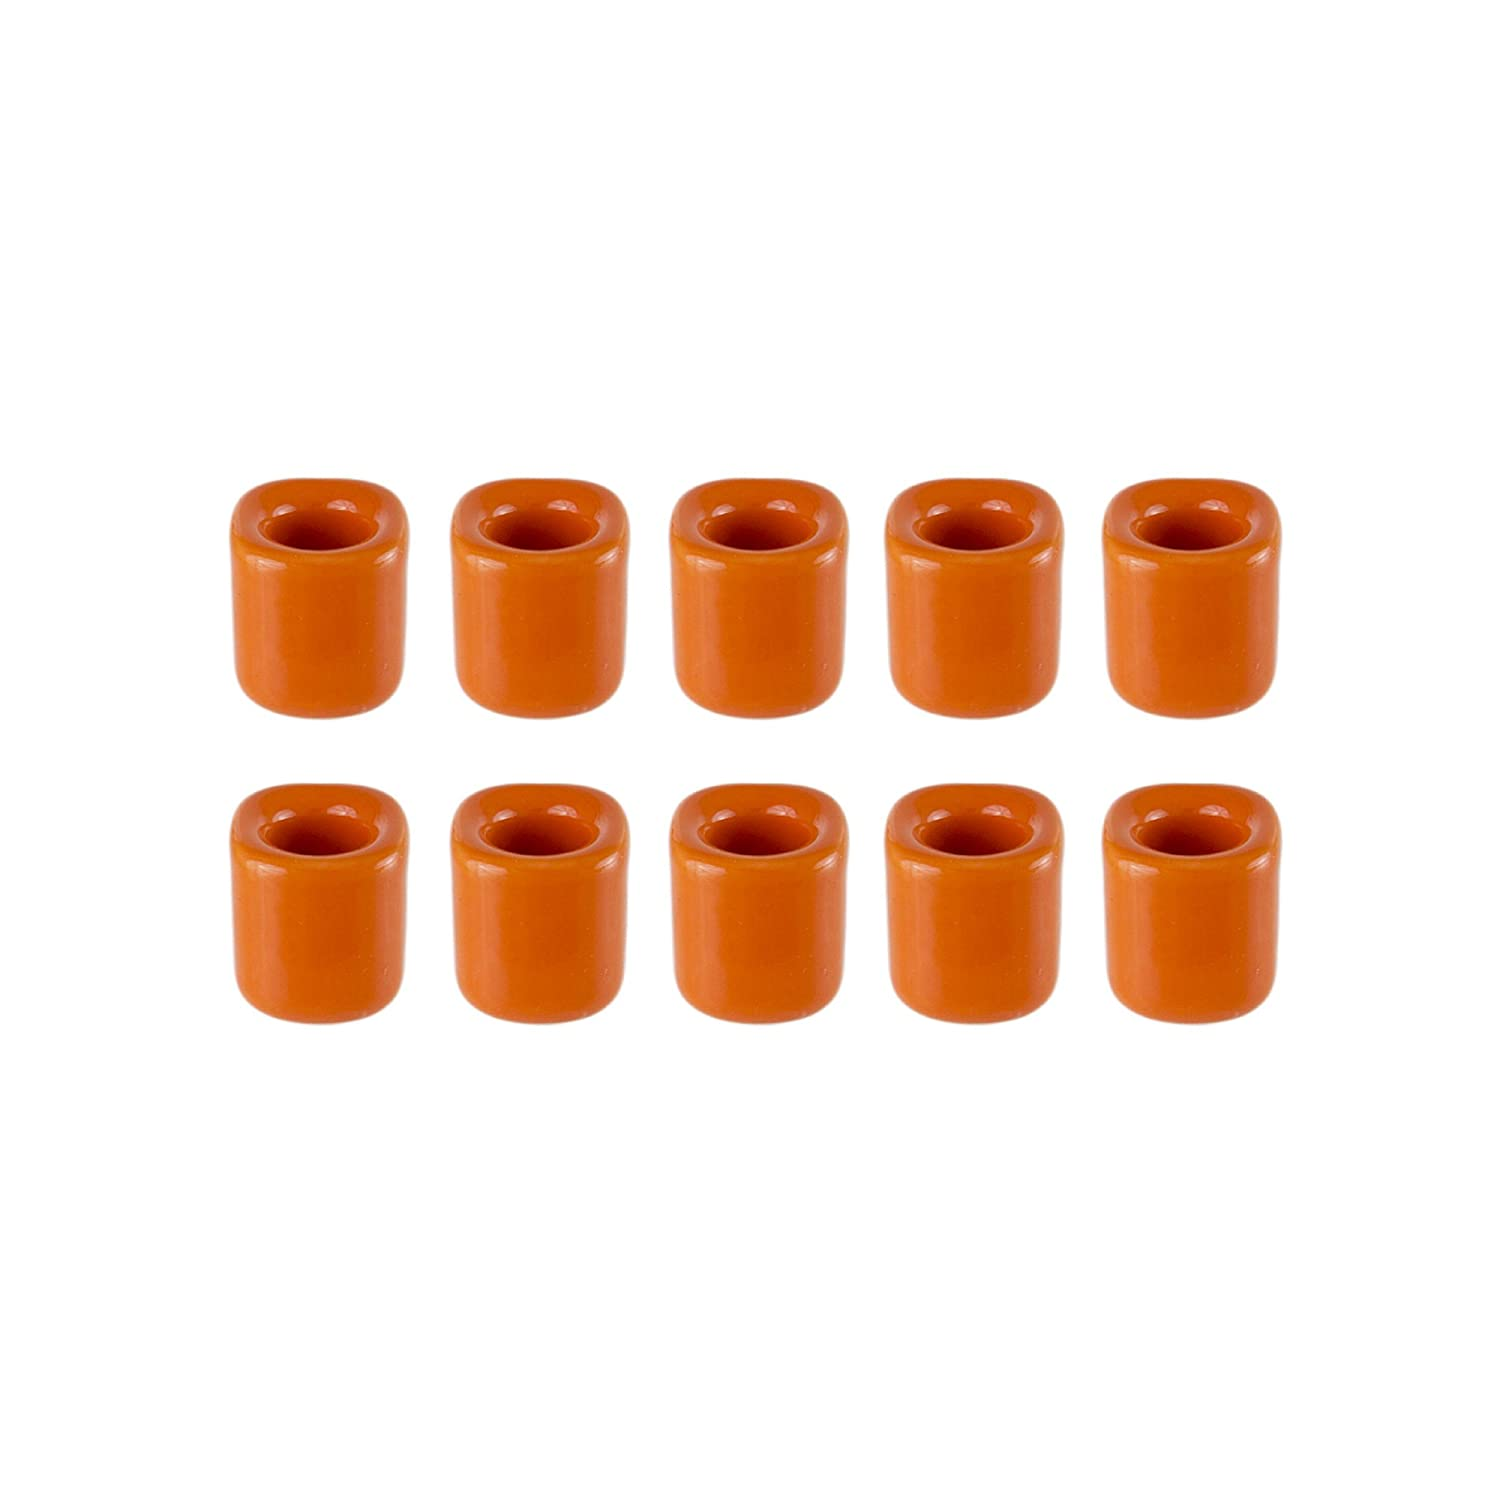 Mega Candles 10 pcs Ceramic Chime Ritual Spell Candle Holders Assorted Colors